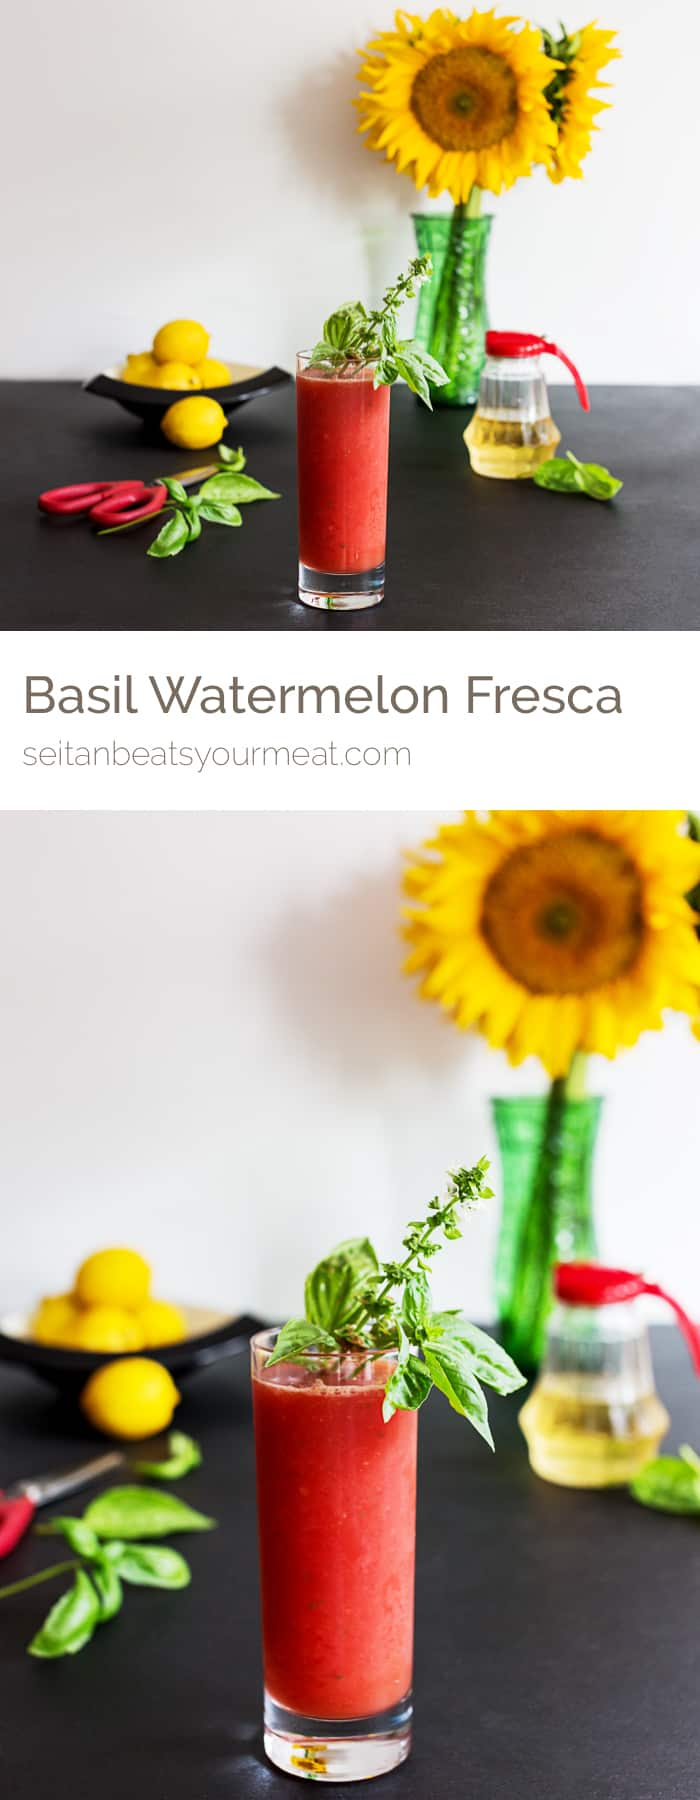 Basil watermelon fresca recipe for summer!